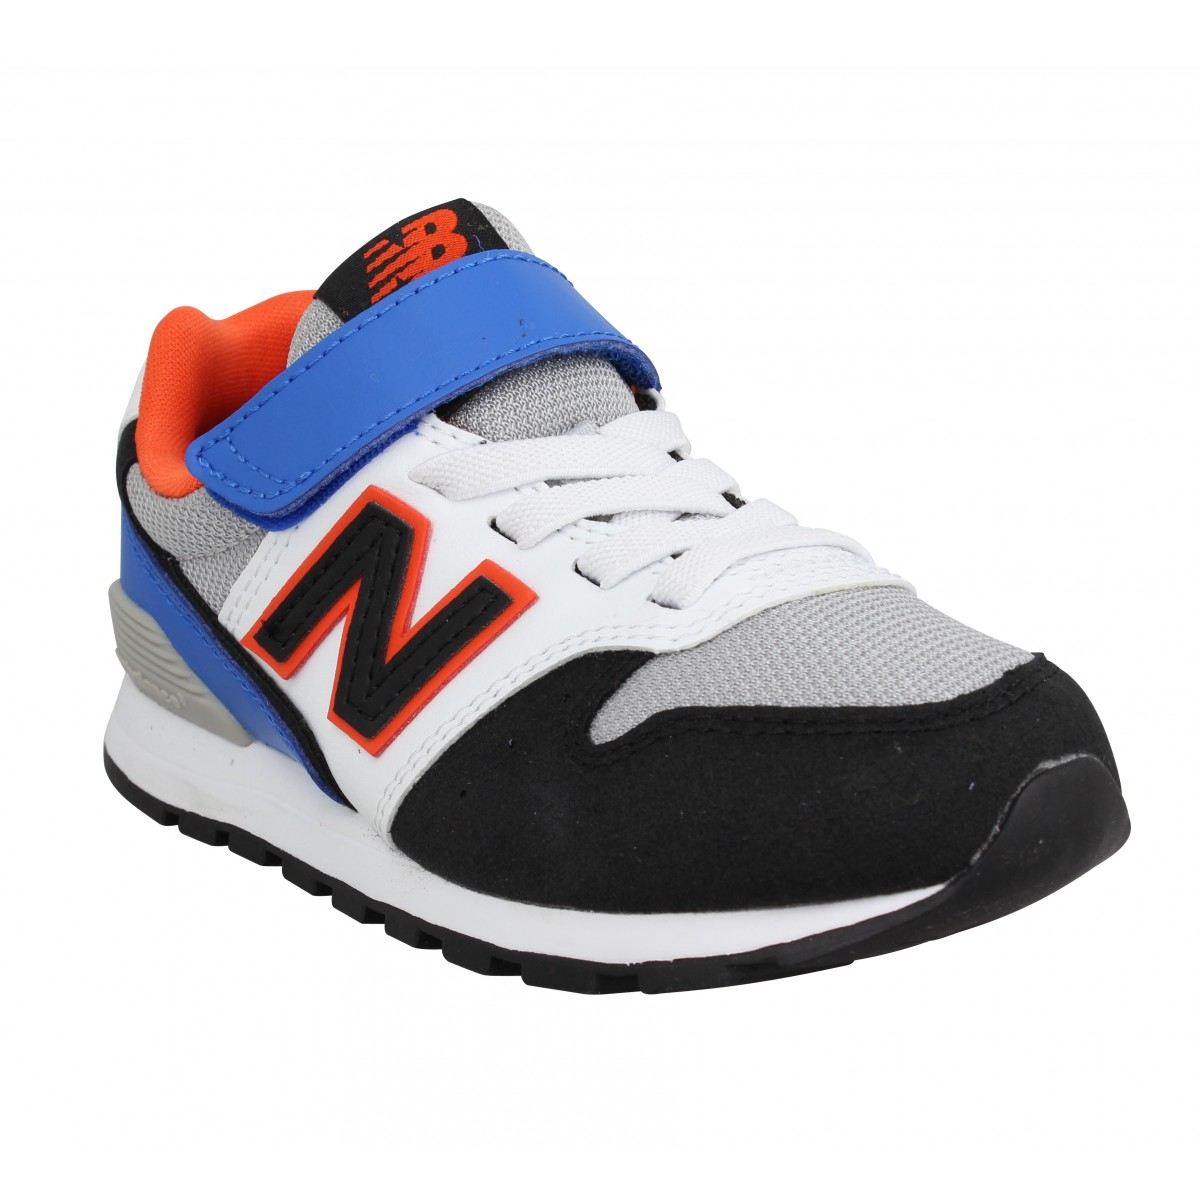 Baskets NEW BALANCE YV996 velours toile Enfant Bleu Orange